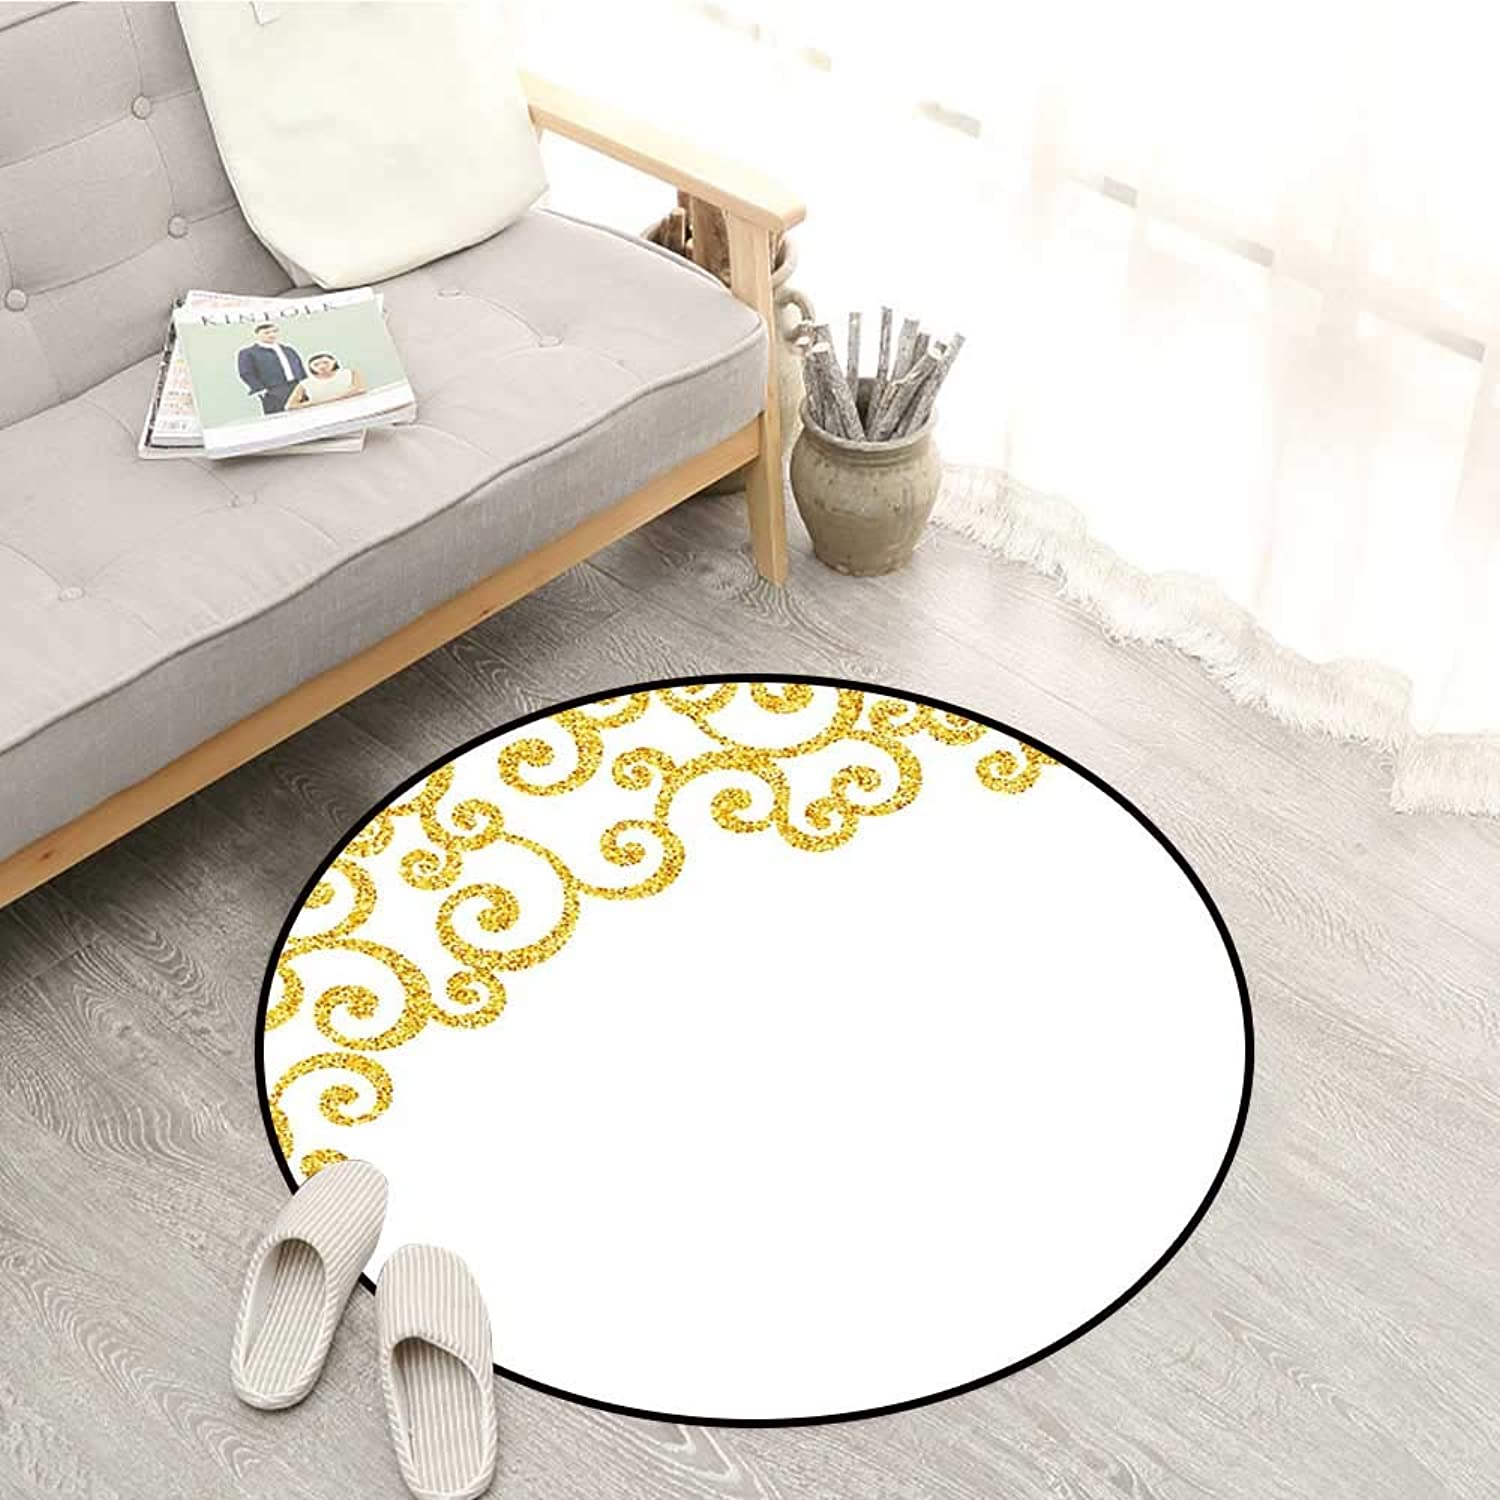 gold and White Non-Slip Rugs Side Frame of Floral Ivy Round Swirl Antique Victorian Details Artwork Sofa Coffee Table Mat 4'7  Yellow and White